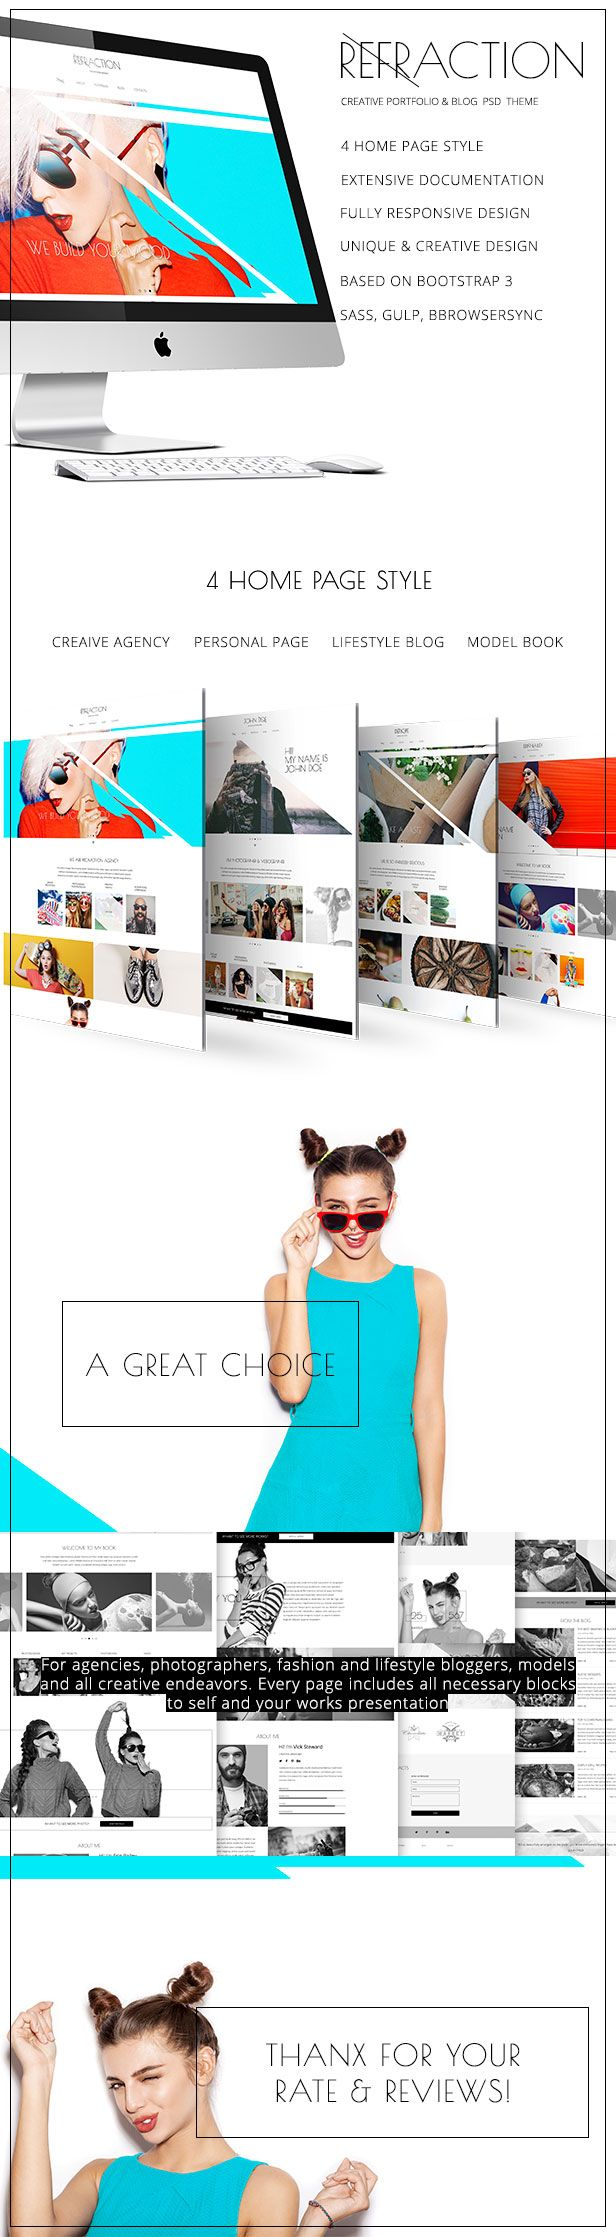 Refraction  Agency Personal Lifestyle Unique & Creative HTML Template (Creative)